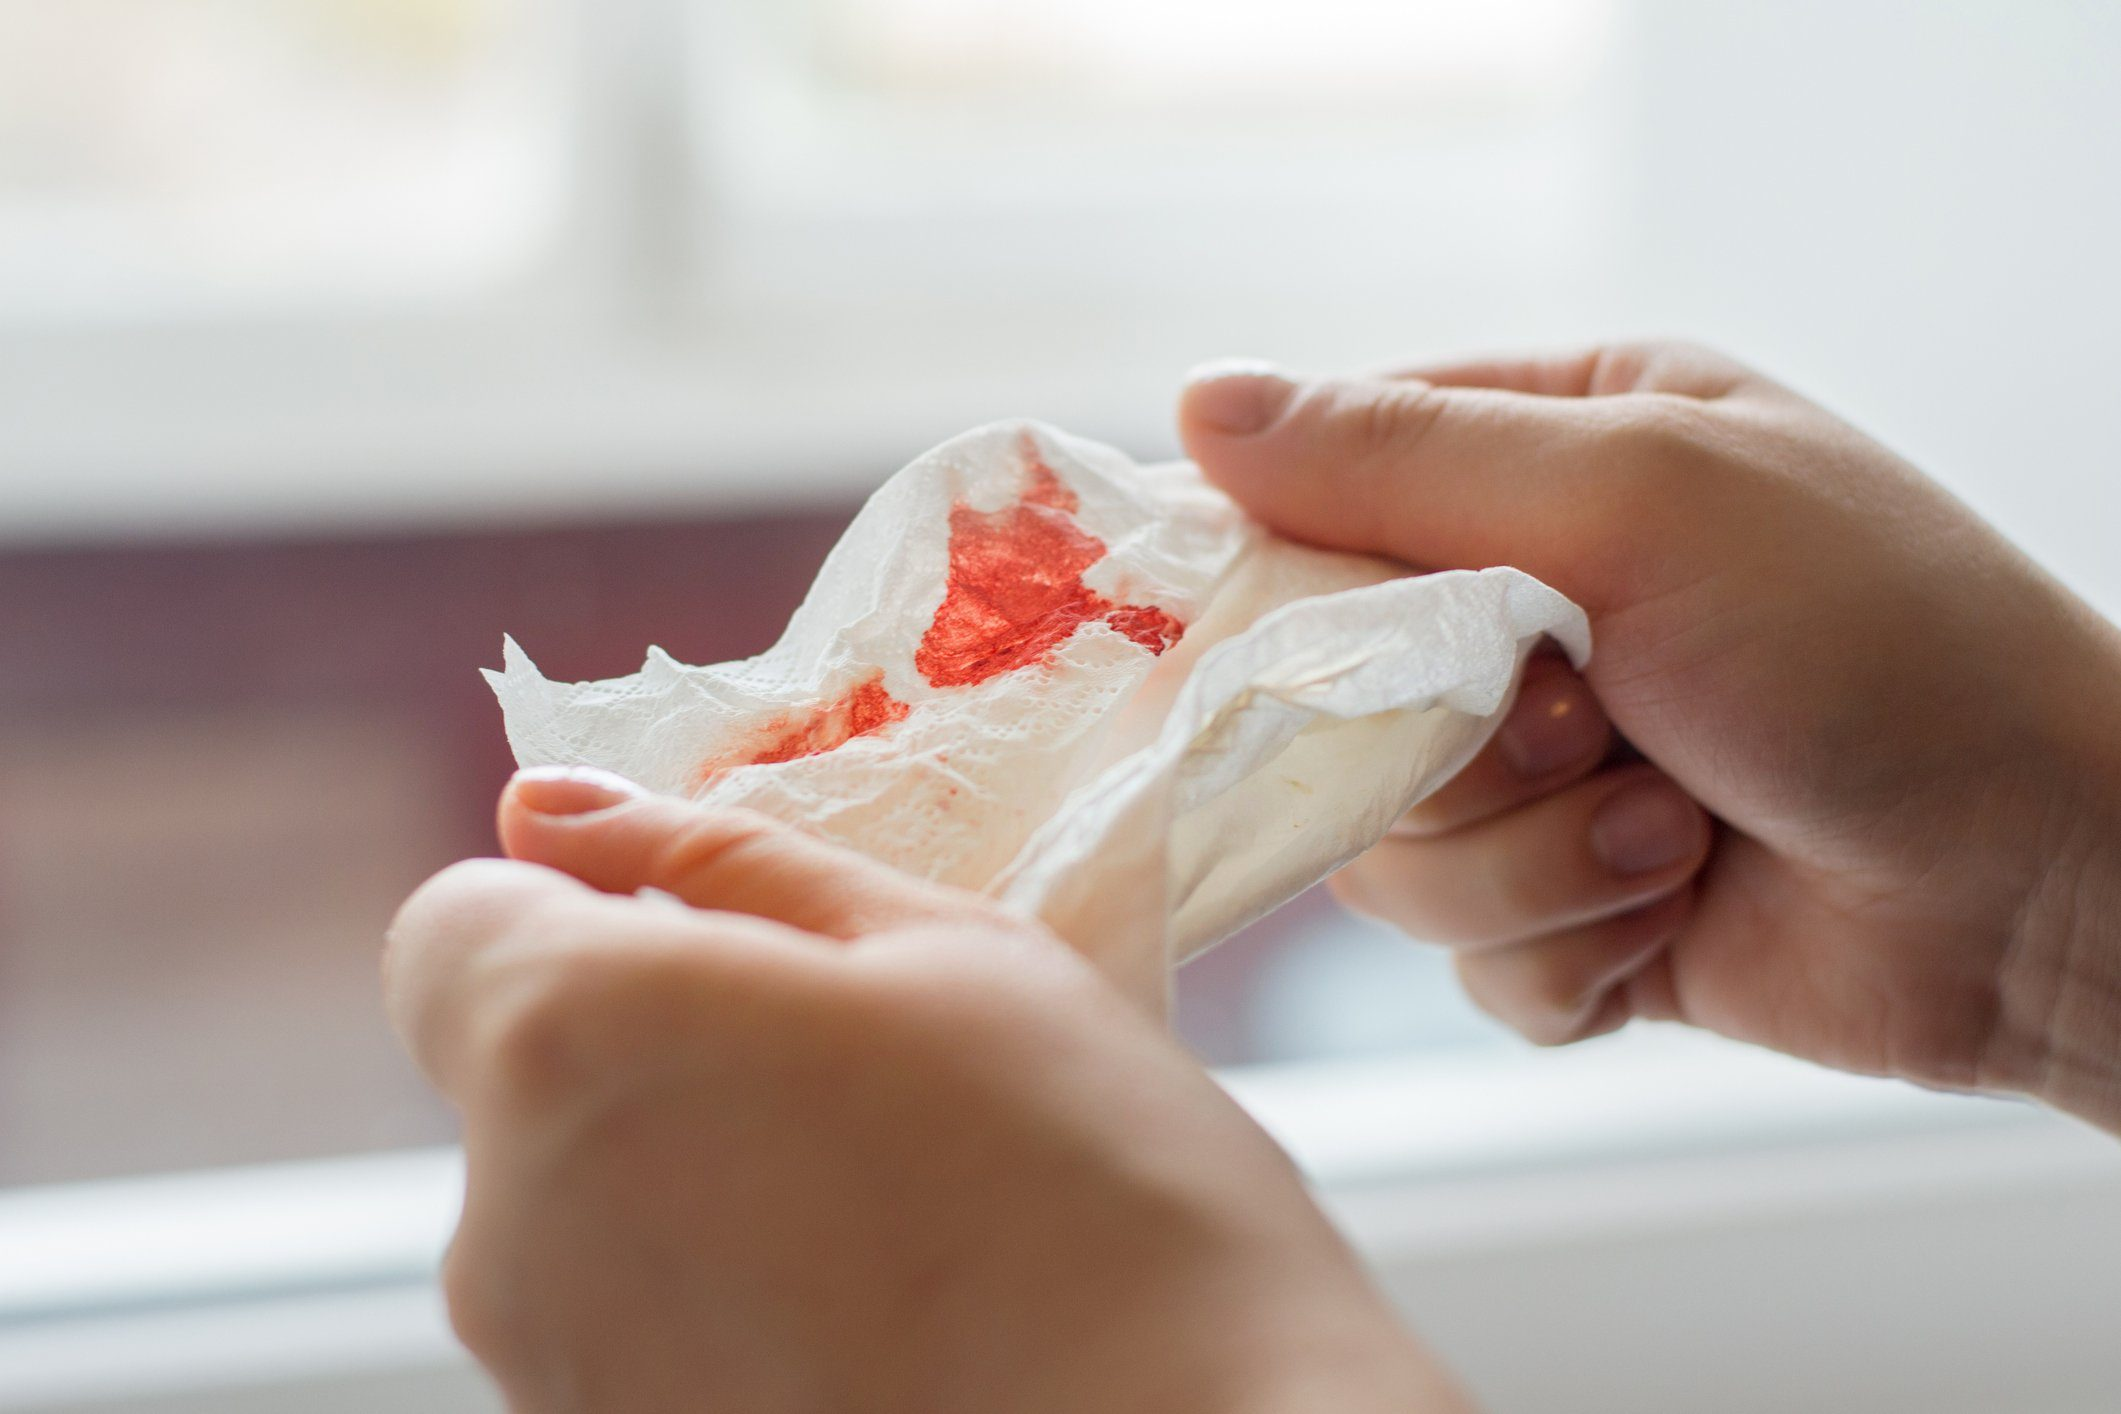 signs your body is in trouble | close up of hands holding a bloody tissue